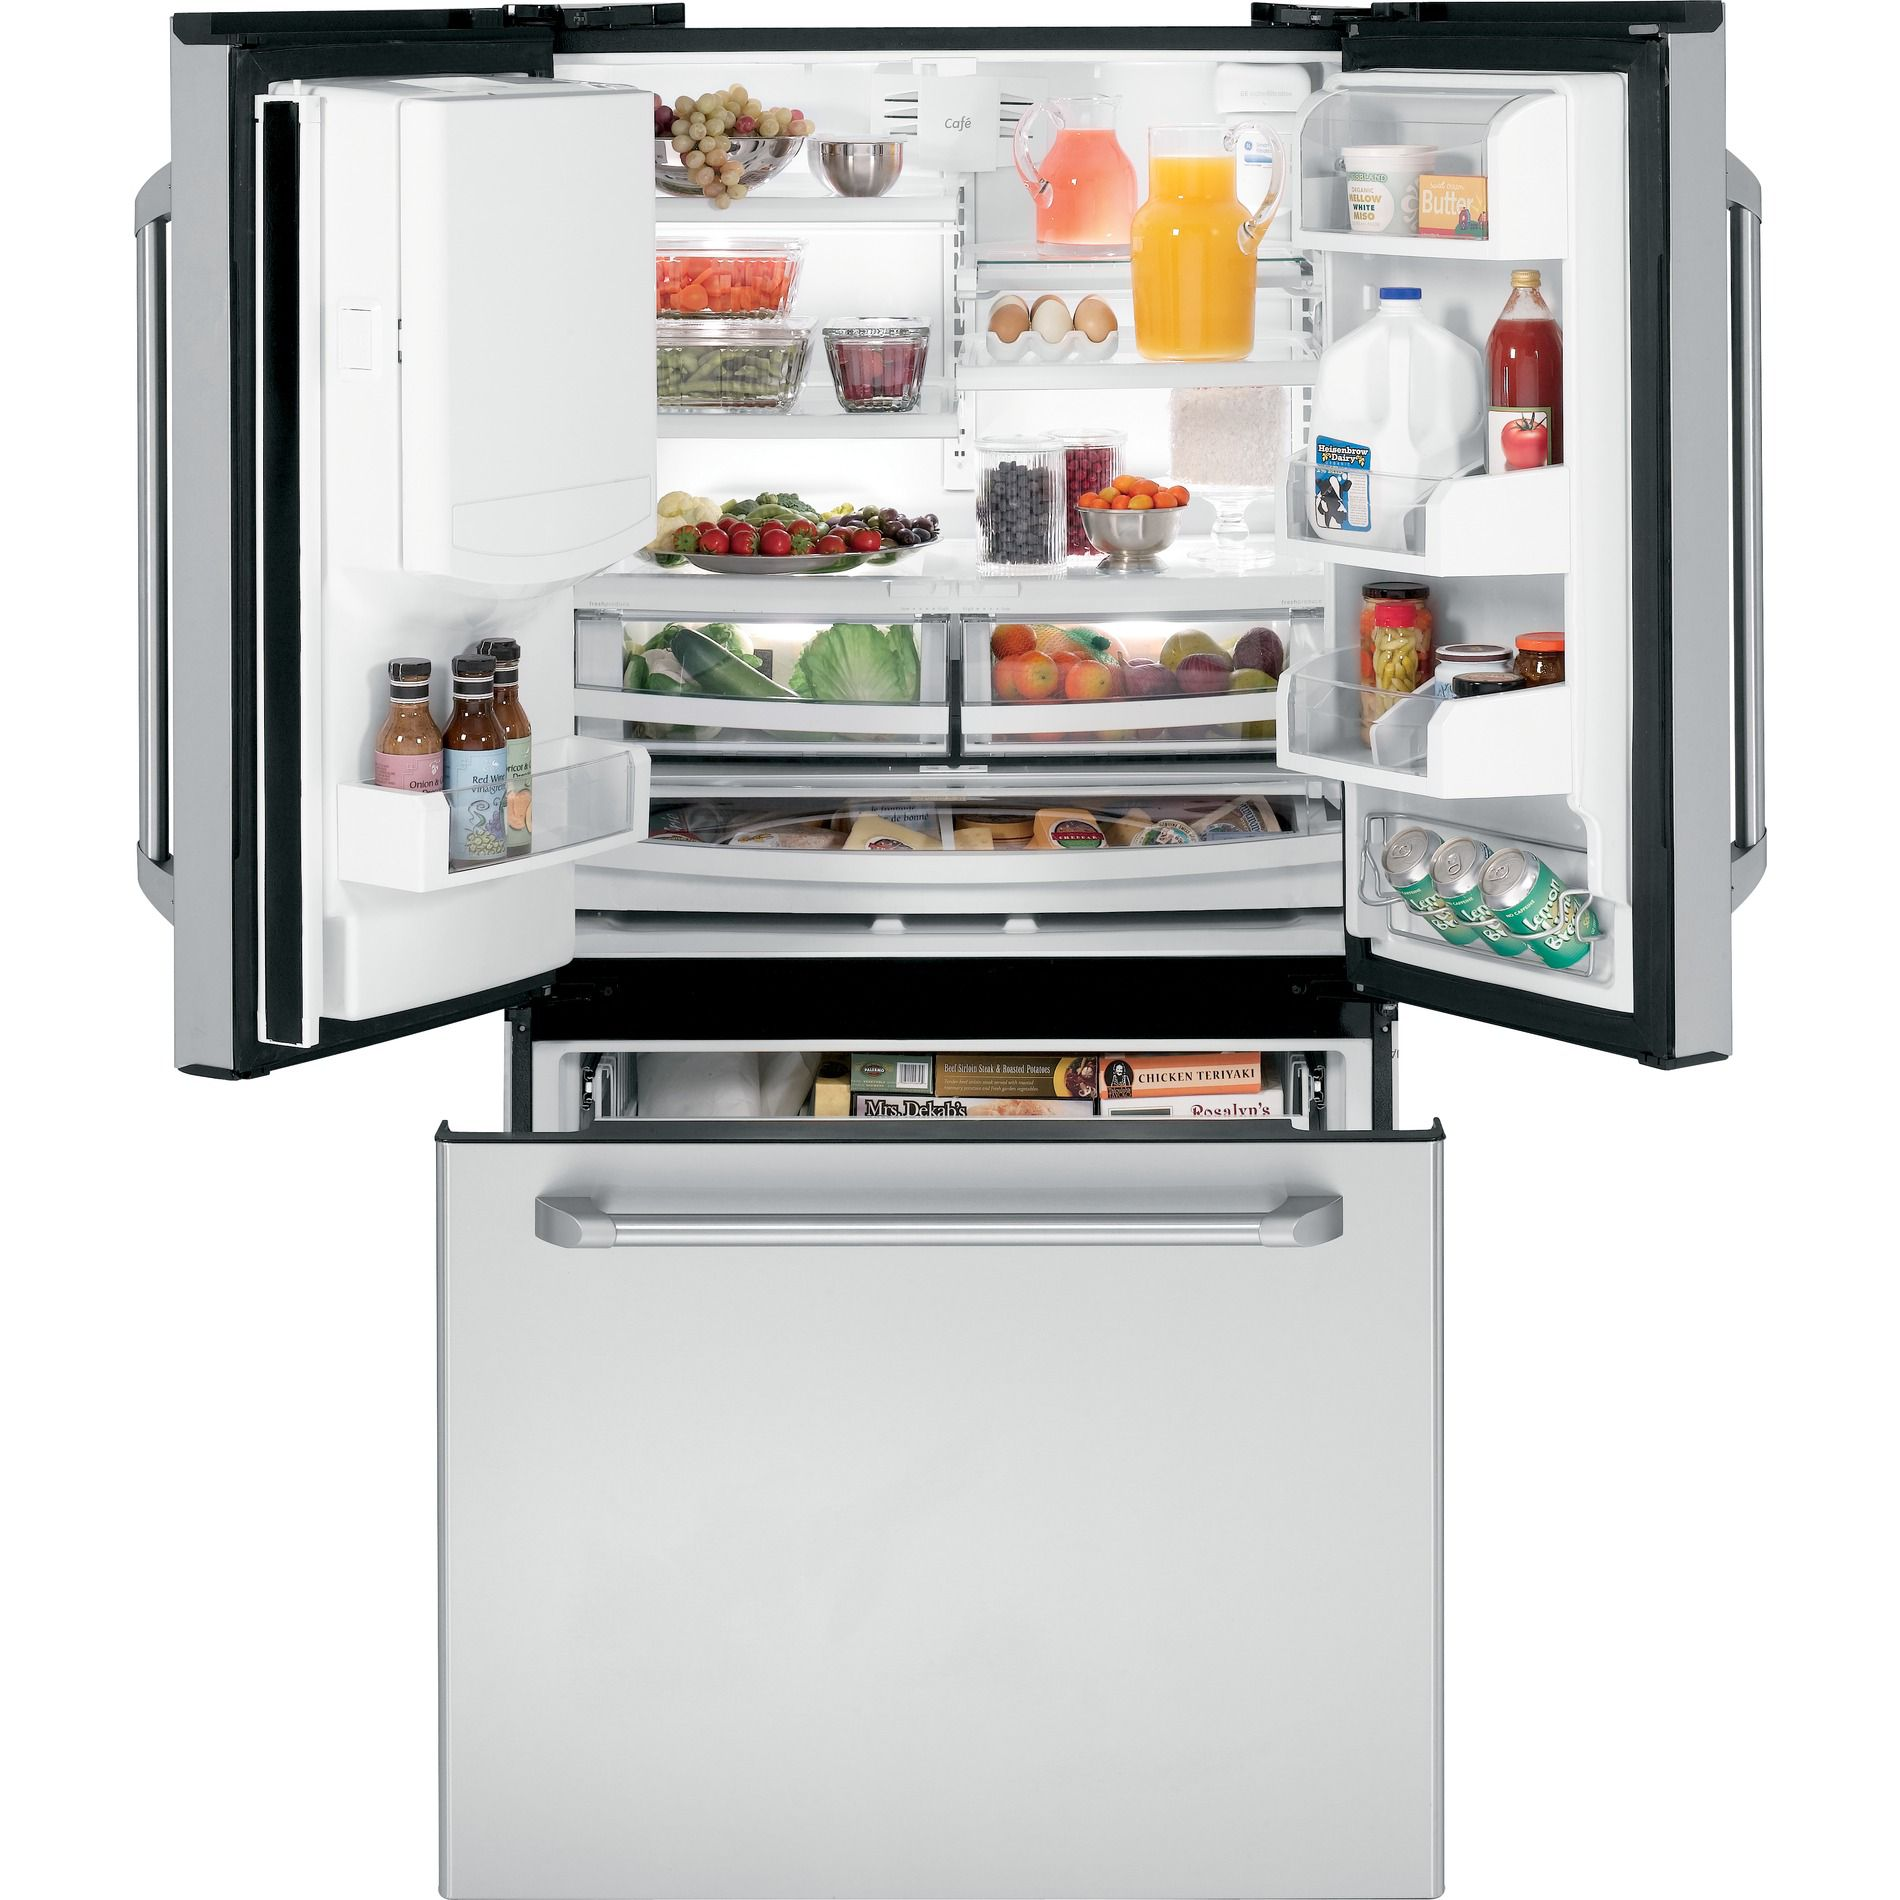 GE Café Café™ Series 25.1 cu. ft. French-Door Bottom-Freezer Refrigerator - Stainless Steel